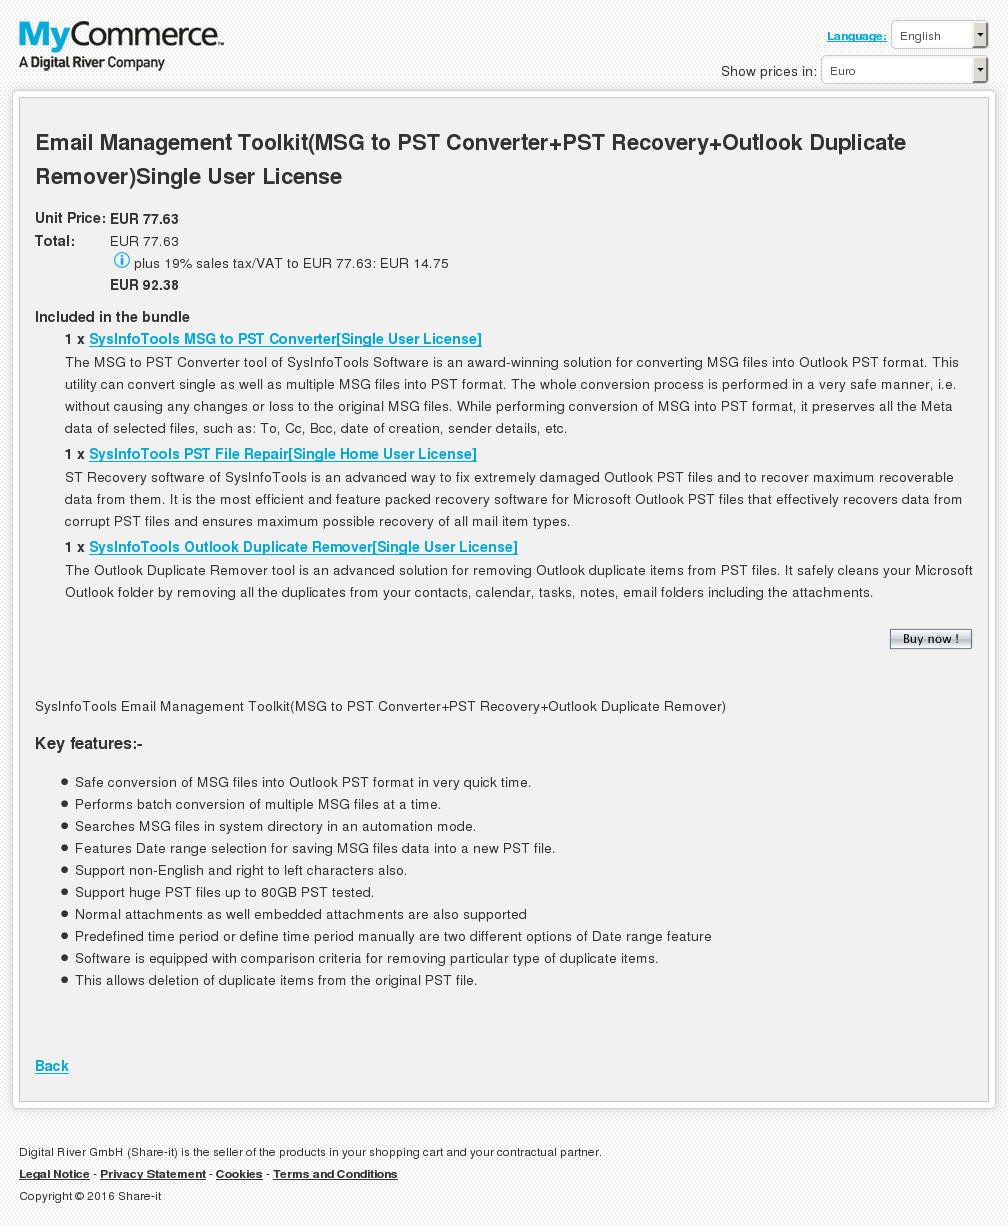 Email Management Toolkit Msg Pst Converter Recovery Outlook Duplicate Remover Single User License Howto